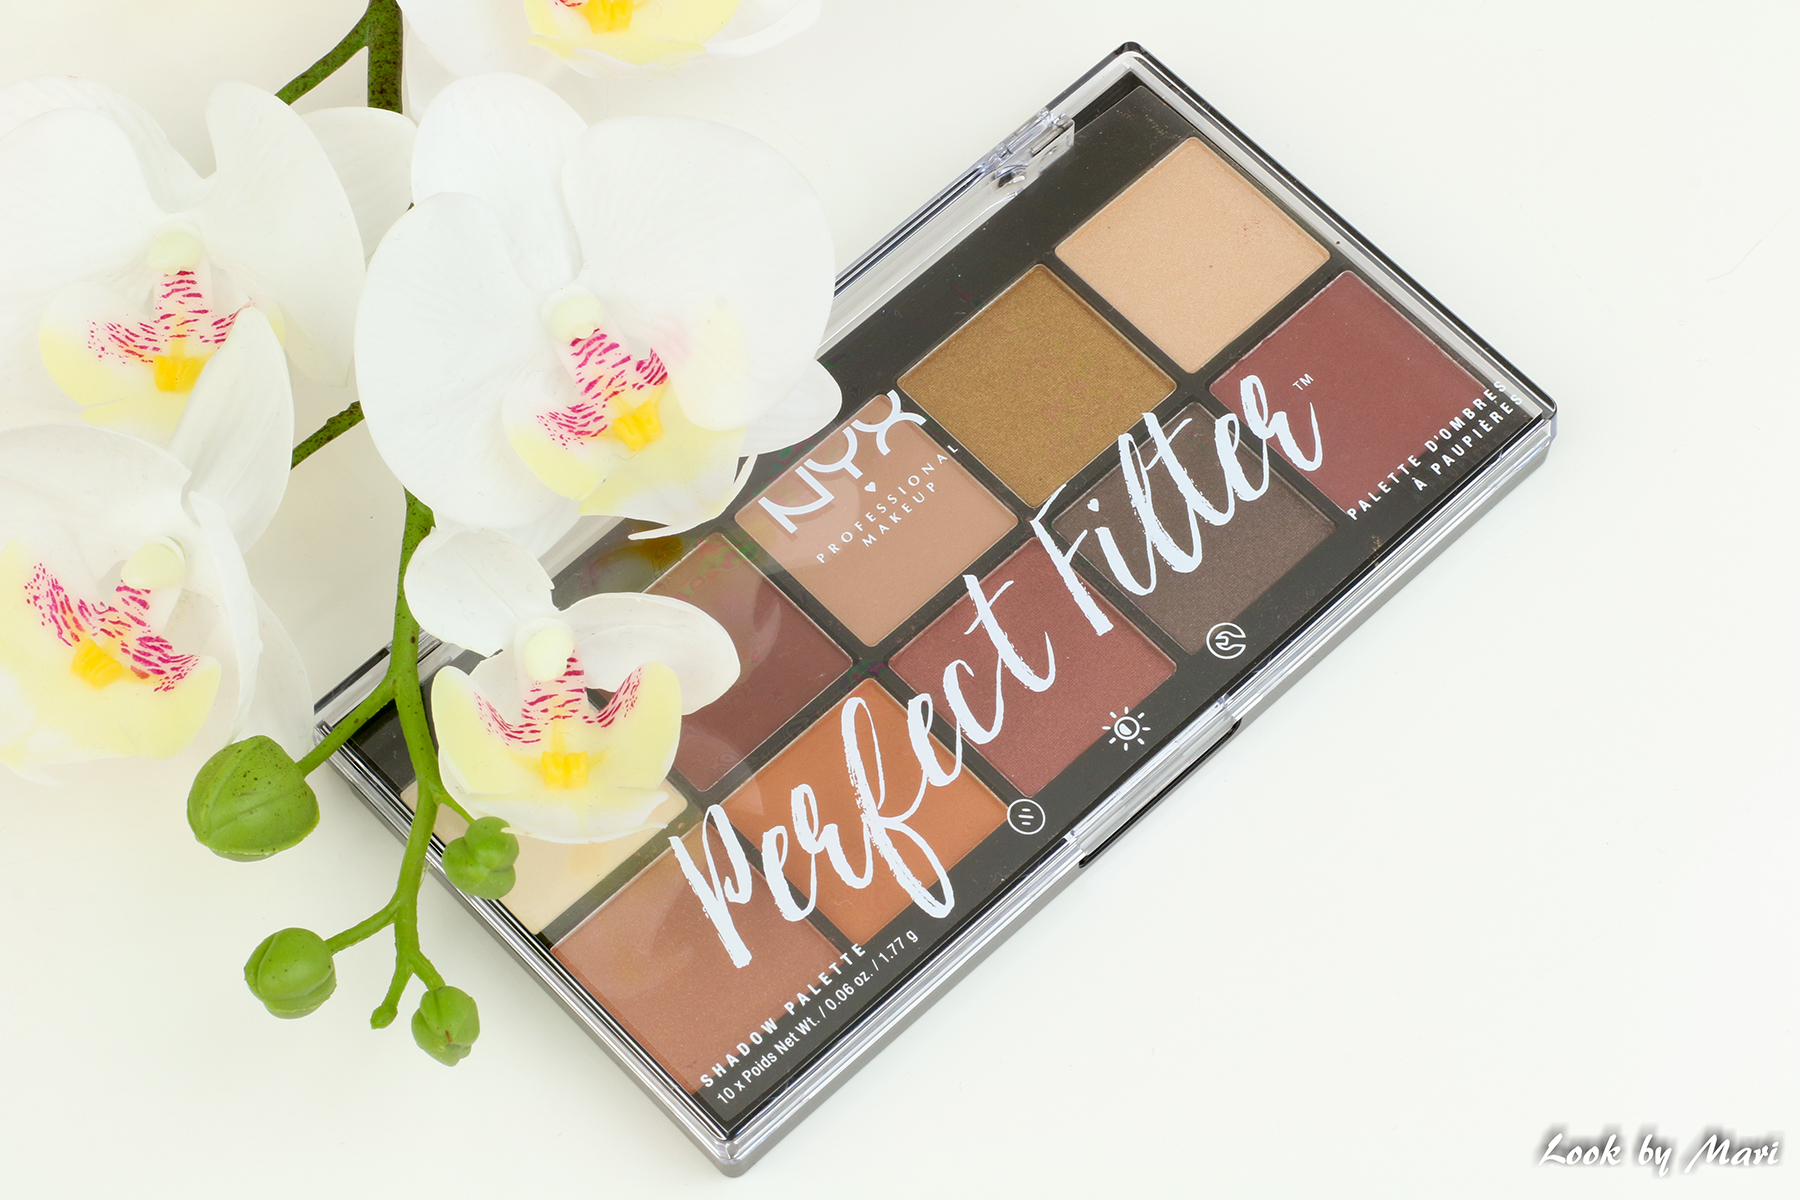 7-1 nyx kesä uutuudet 2017 summer products eyeshadow palettes blog blogi